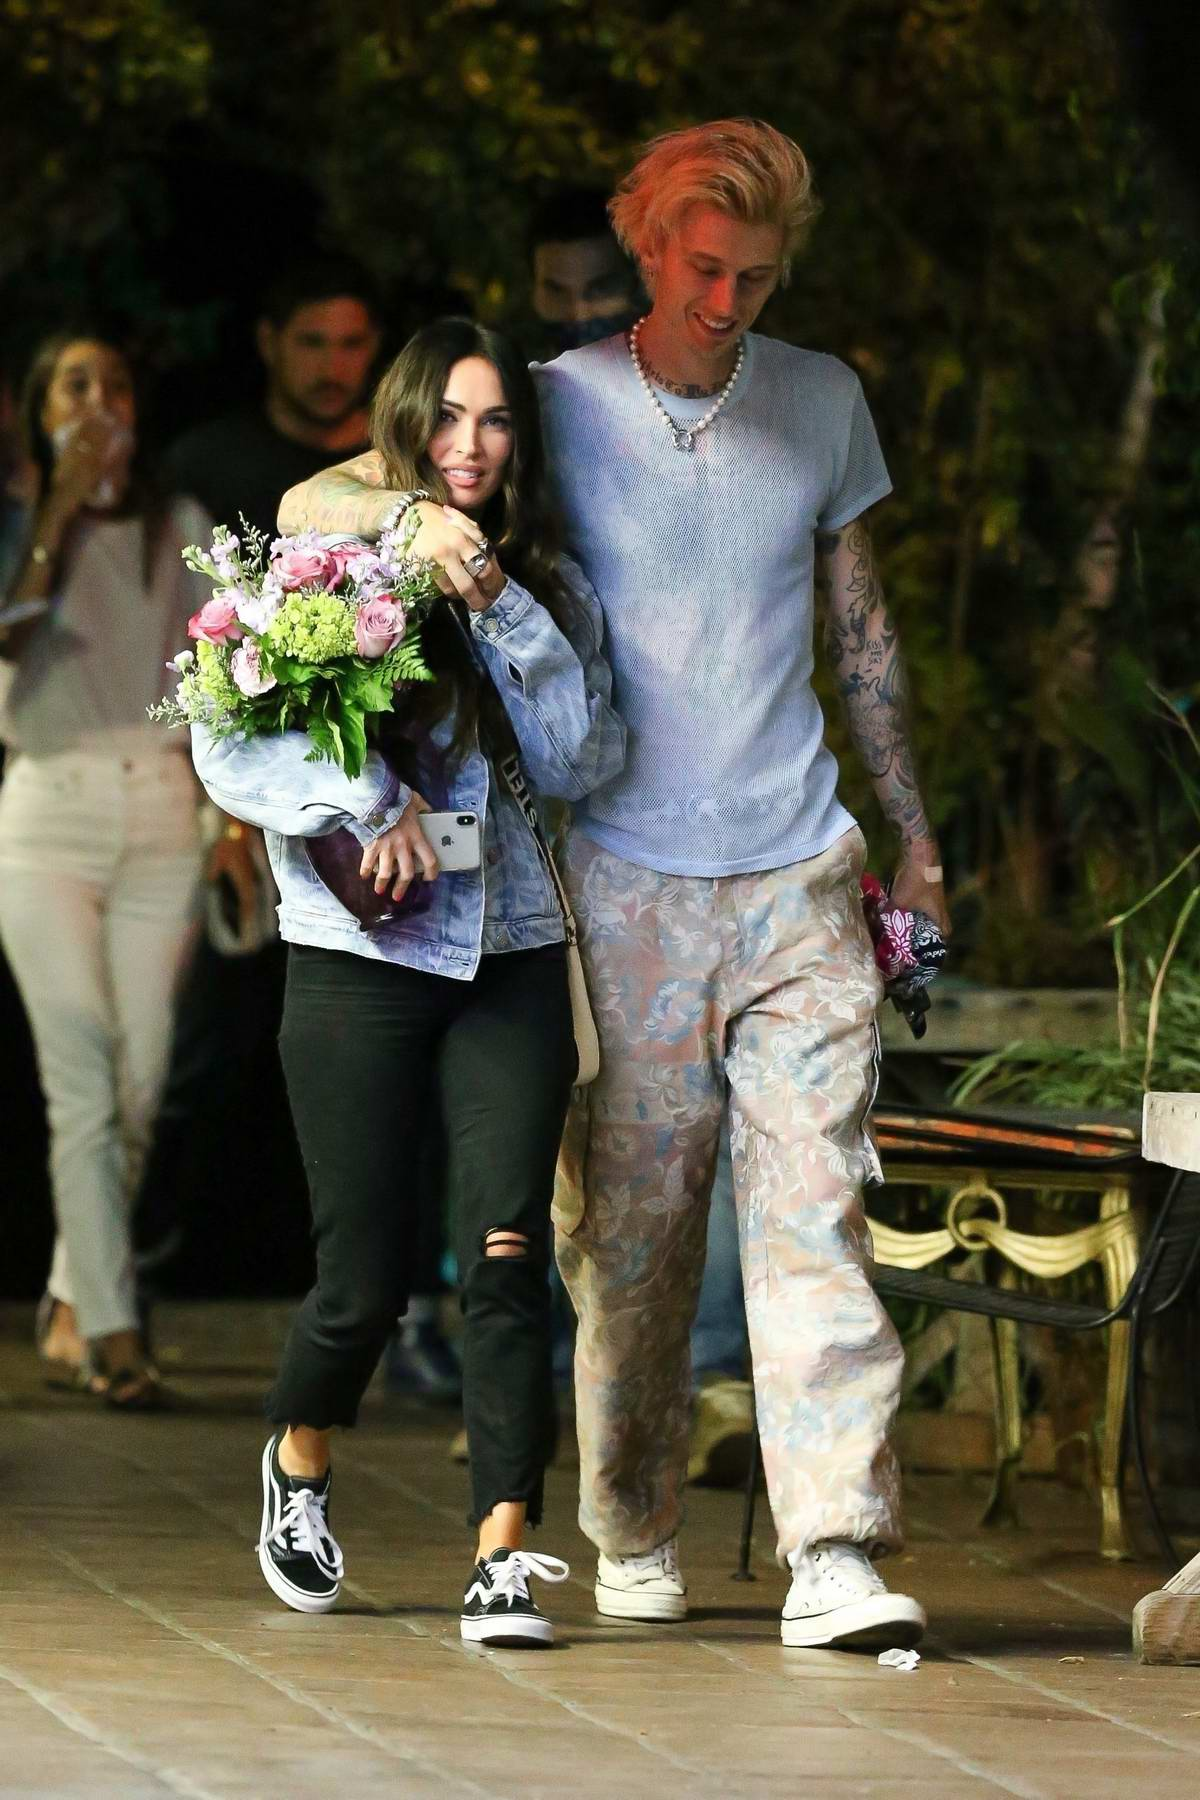 Megan Fox is all smiles while out on a romantic dinner date with Machine Gun Kelly in Hollywood, California